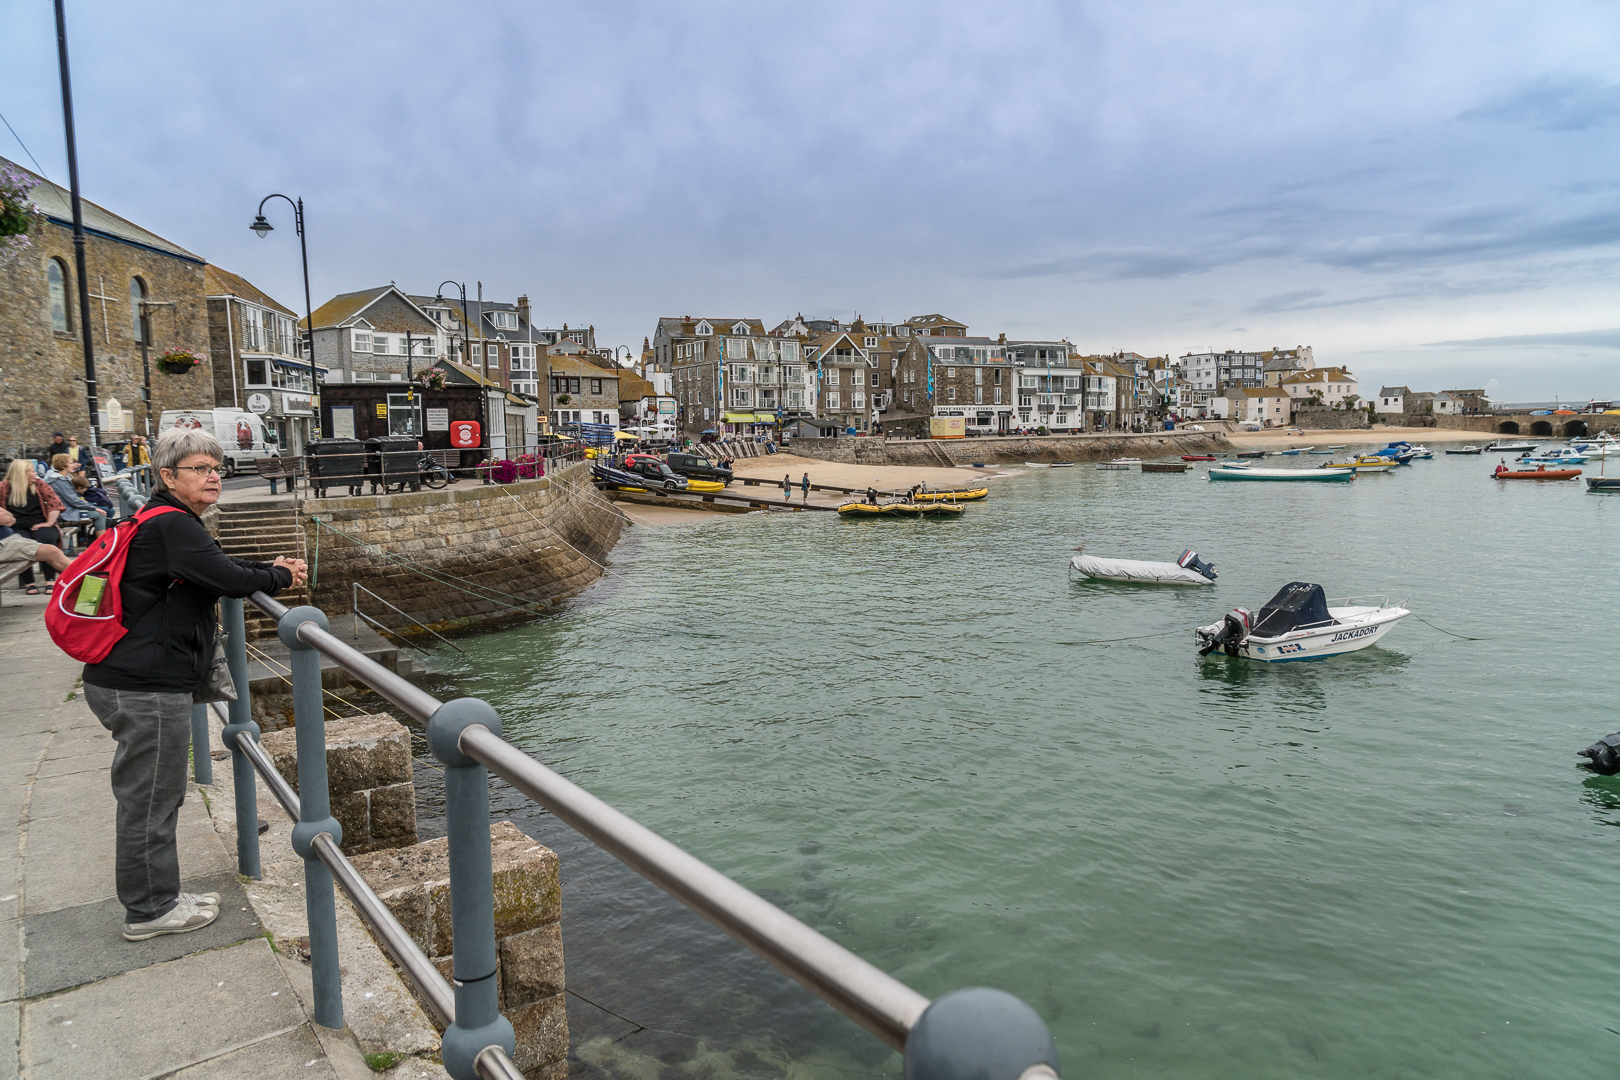 Walli in St. Ives